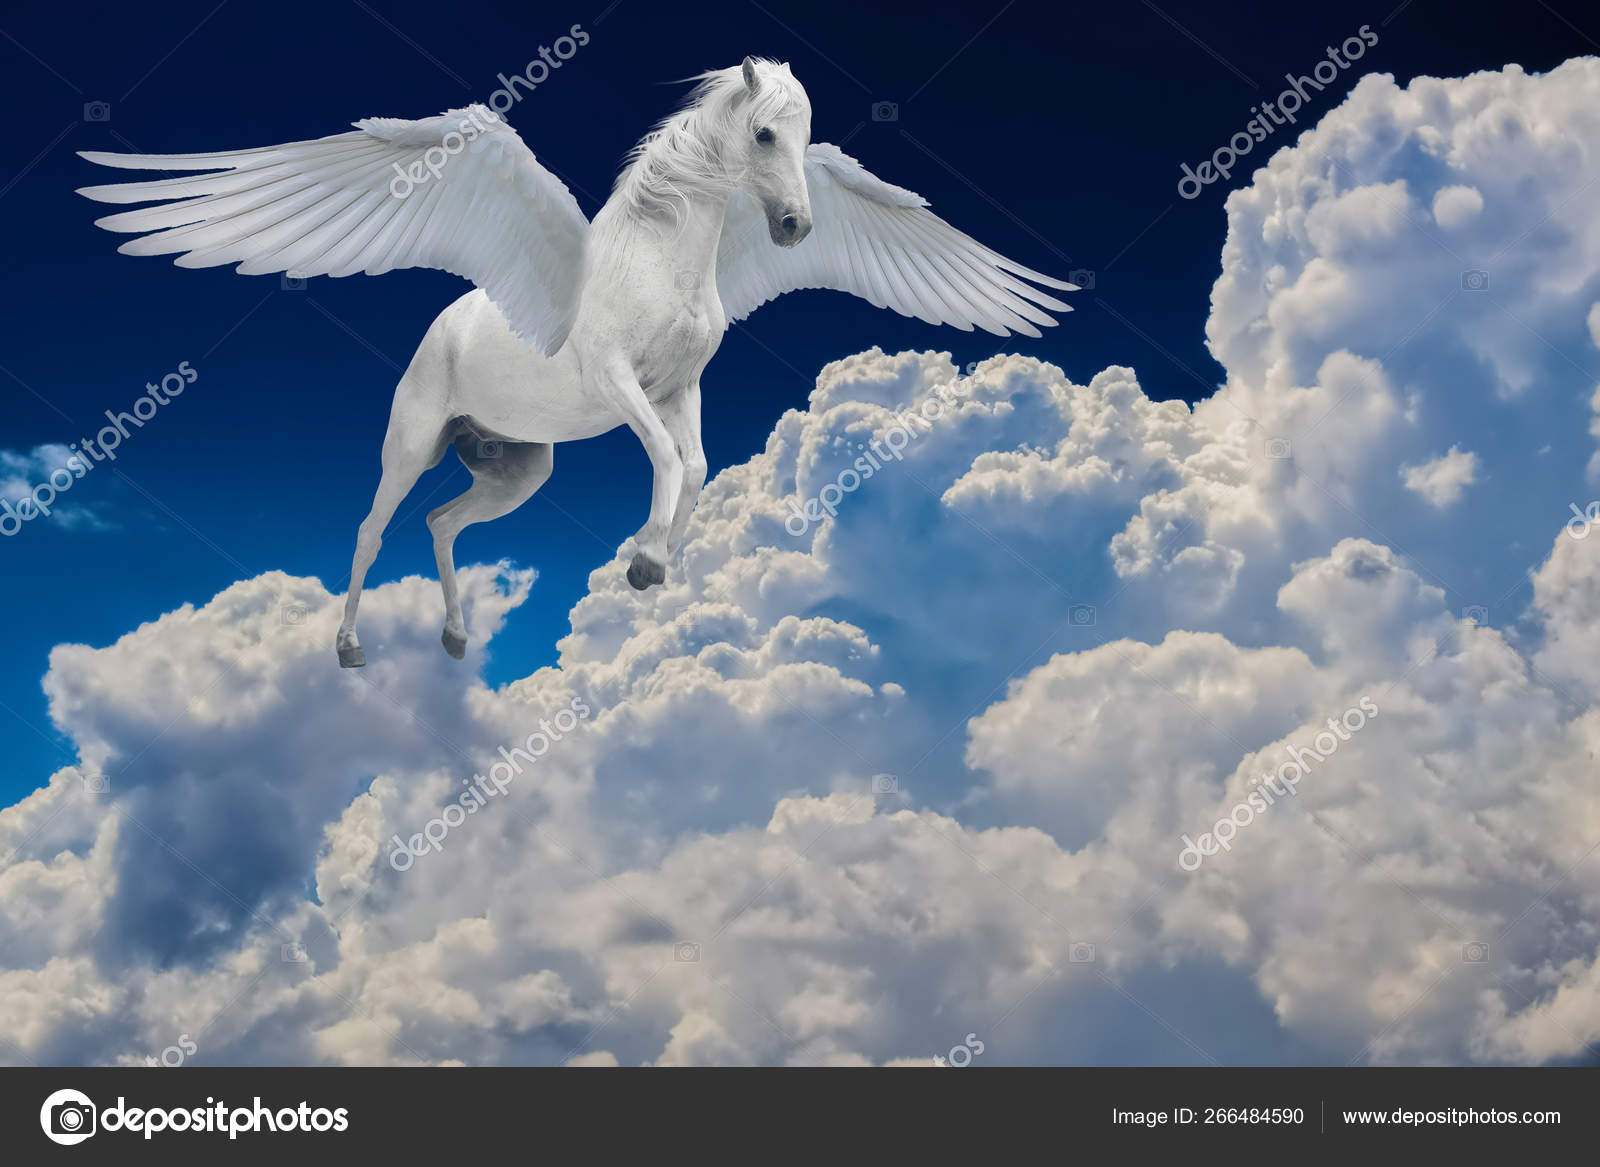 Pegasus Winged Legendary White Horse Flying With Spread Wings In Cloudy Sky Stock Photo C Canbedone 266484590